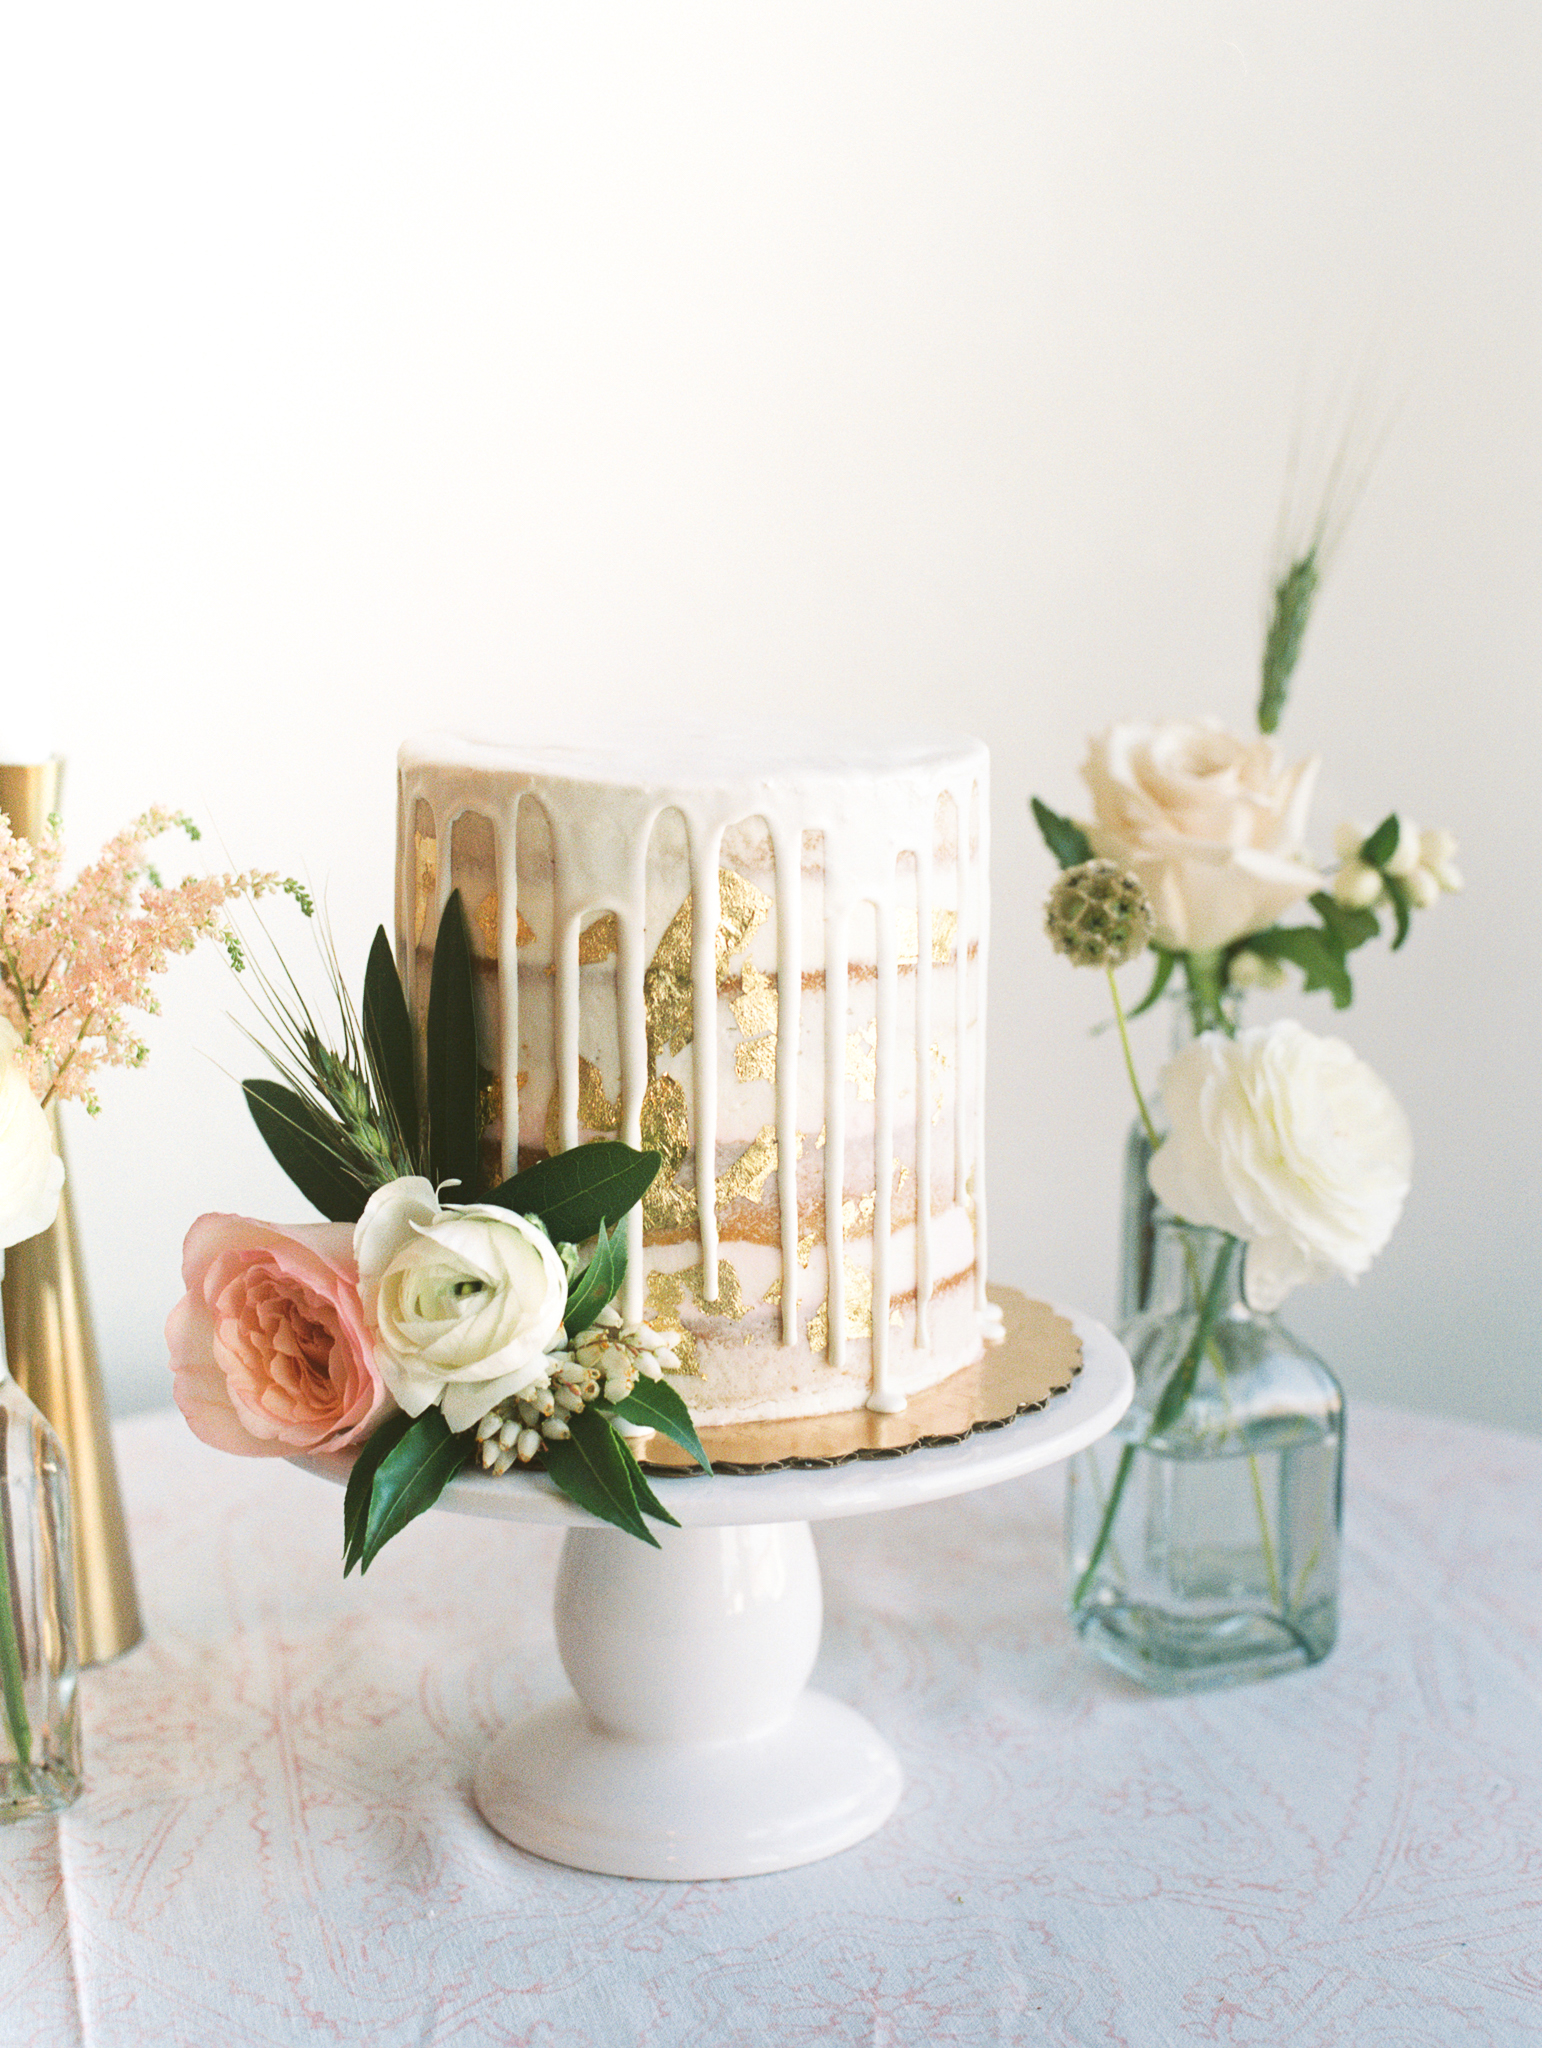 Amy-Golding-Wedding-Photography-flourandfrecklescake-eventscience-100layercake